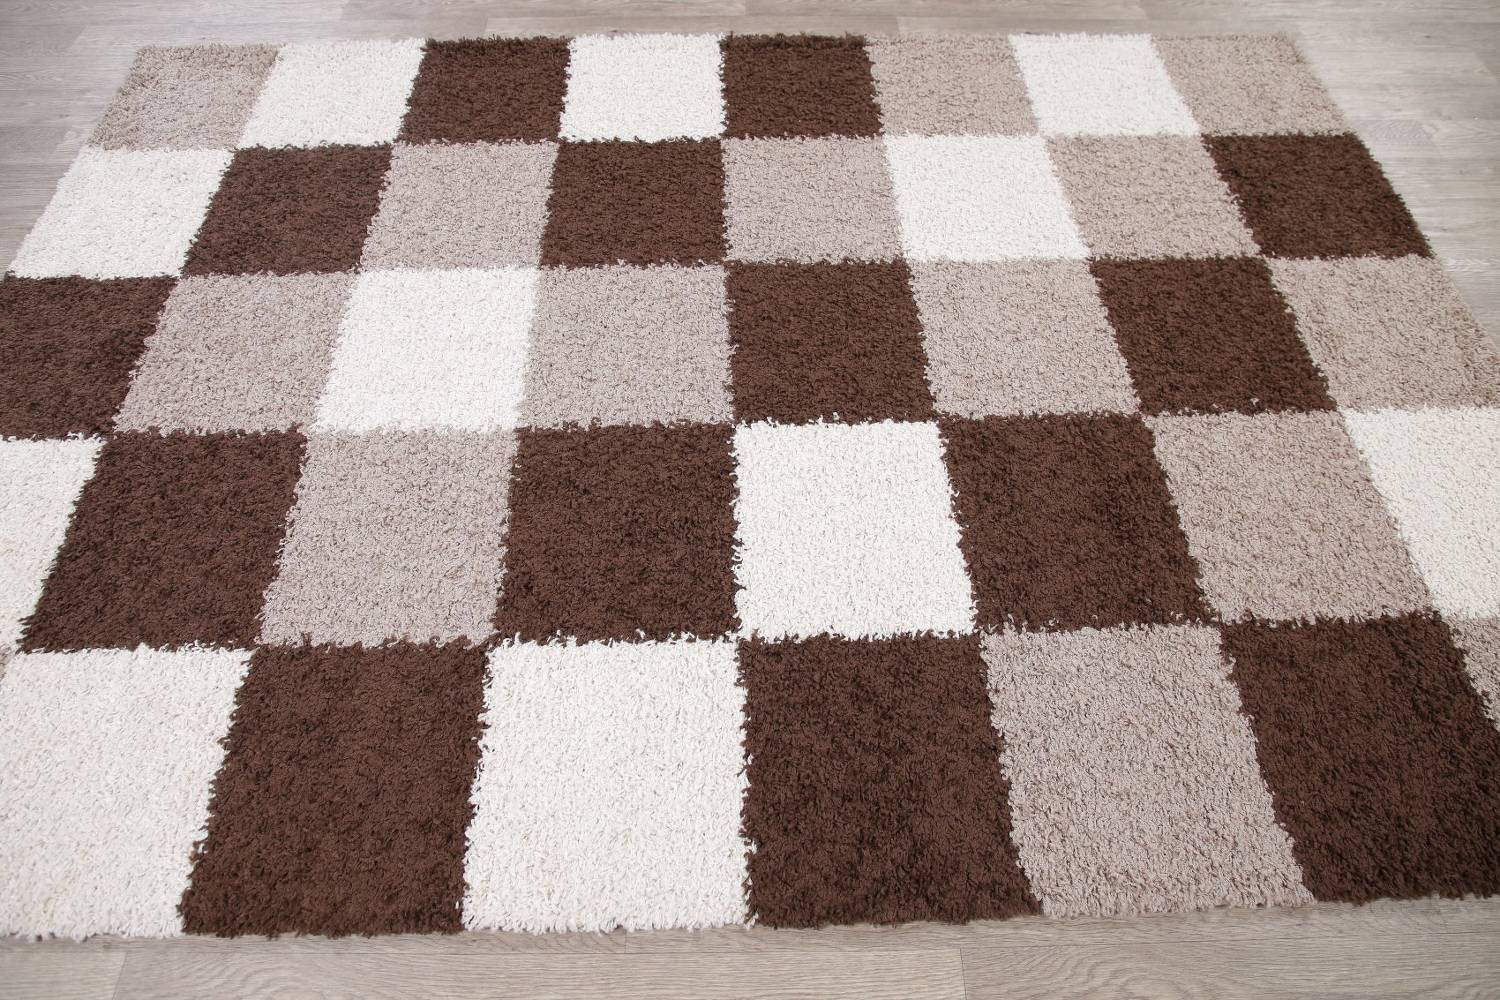 Checked Shaggy Turkish Oriental Rugs image 9